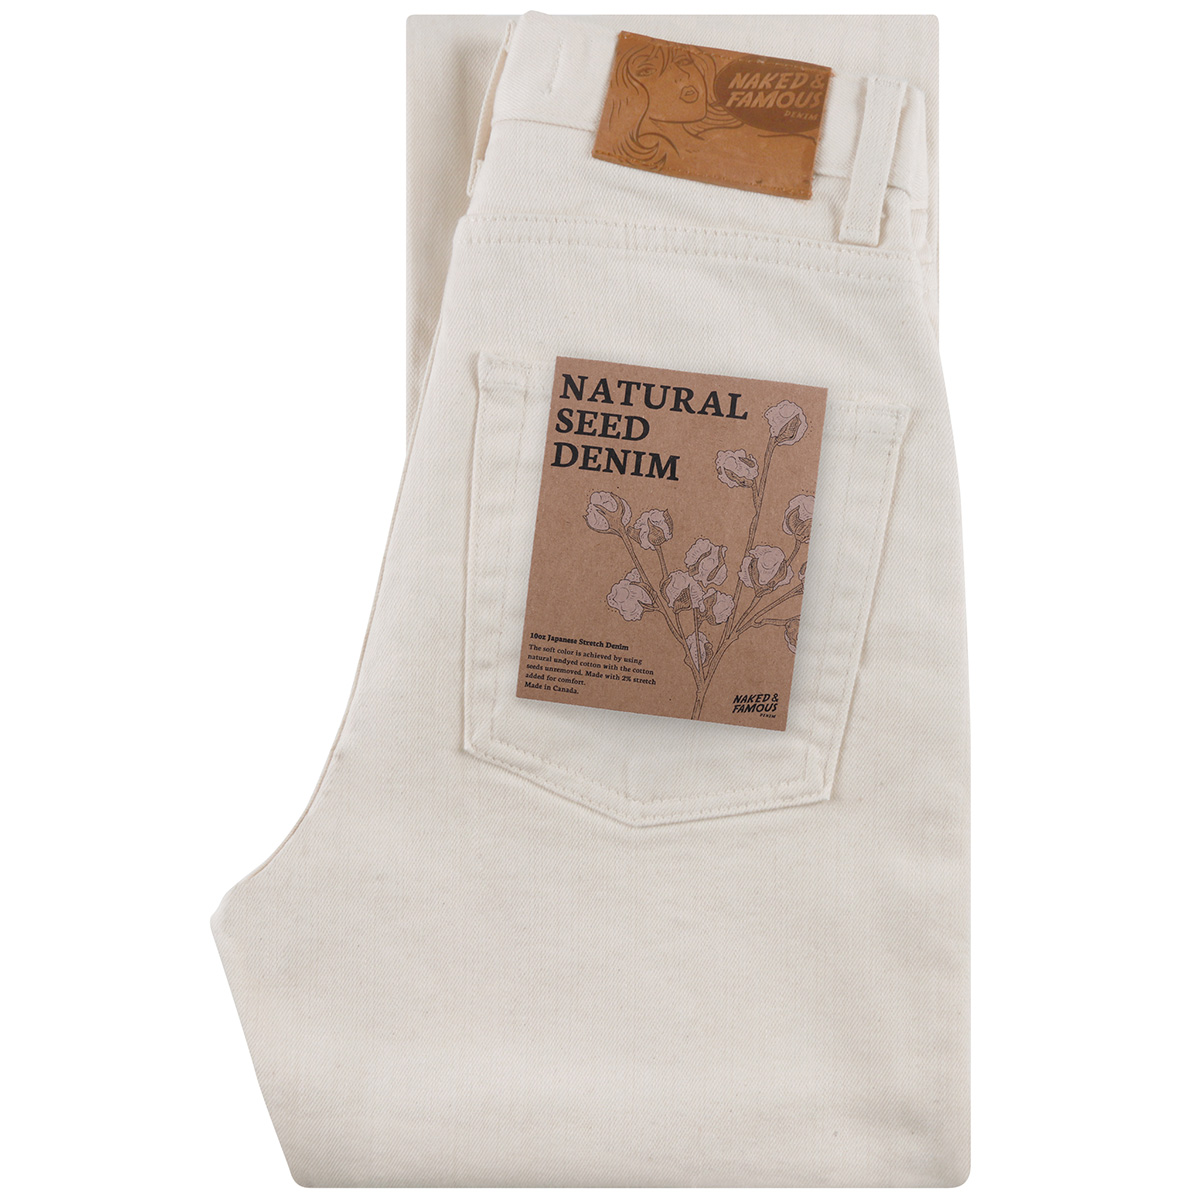 NATURAL SEED DENIM - Classic